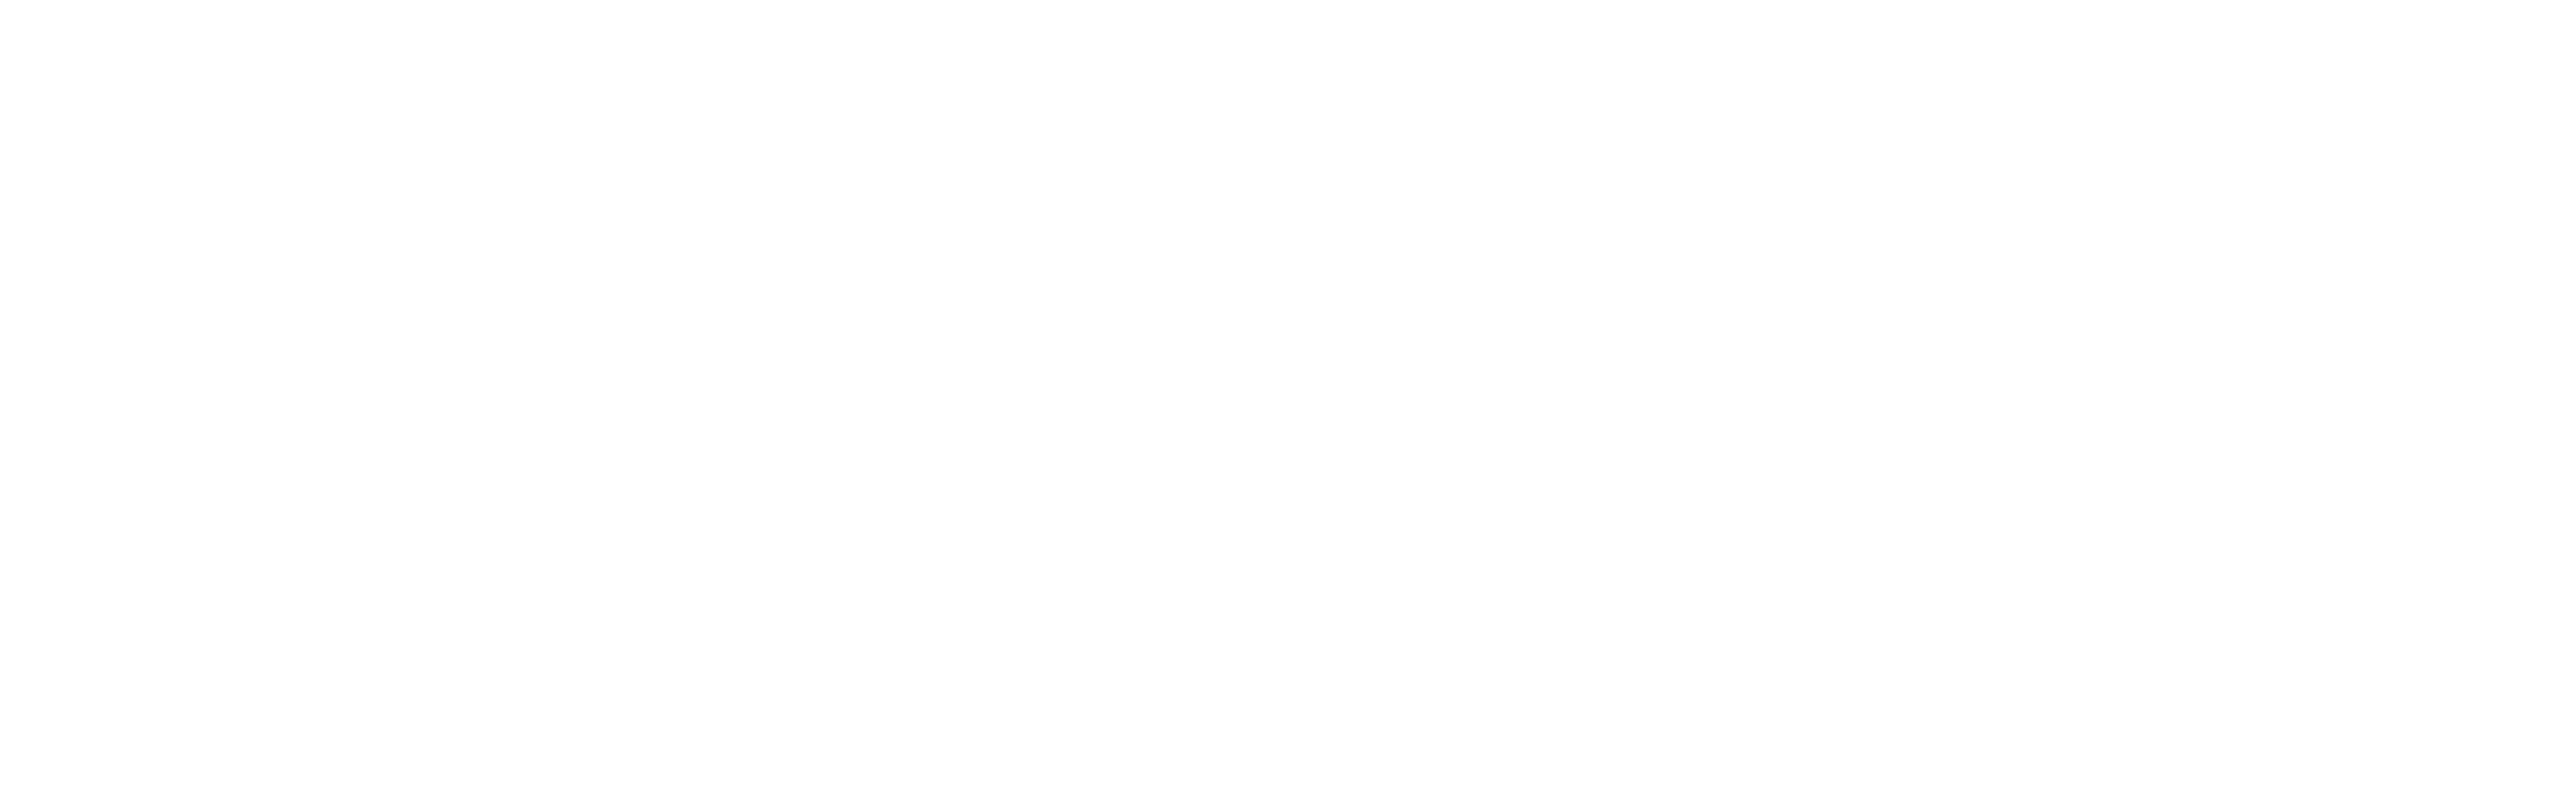 Mako-Medical-logo